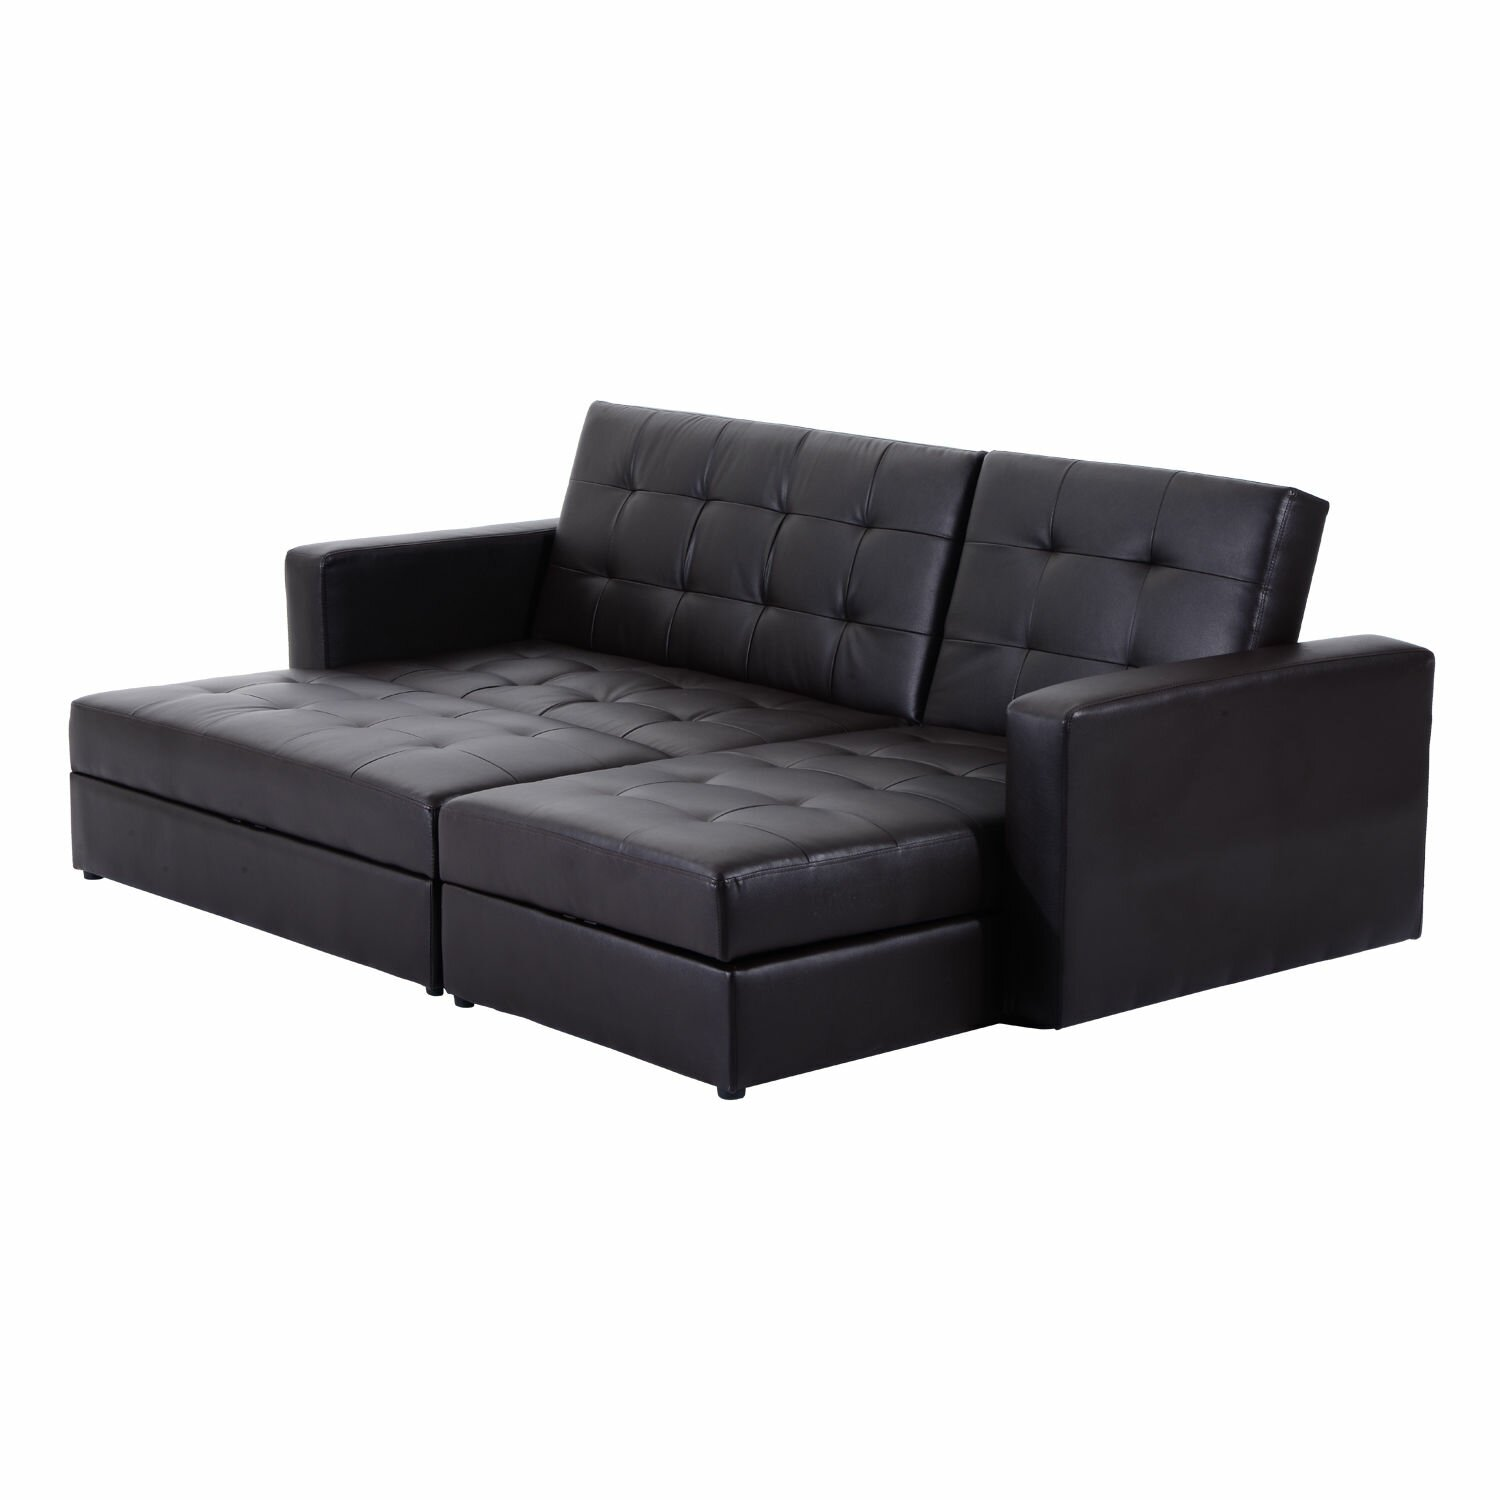 Homcom storage sleeper couch sofa bed wayfair uk Sleeper sofa uk